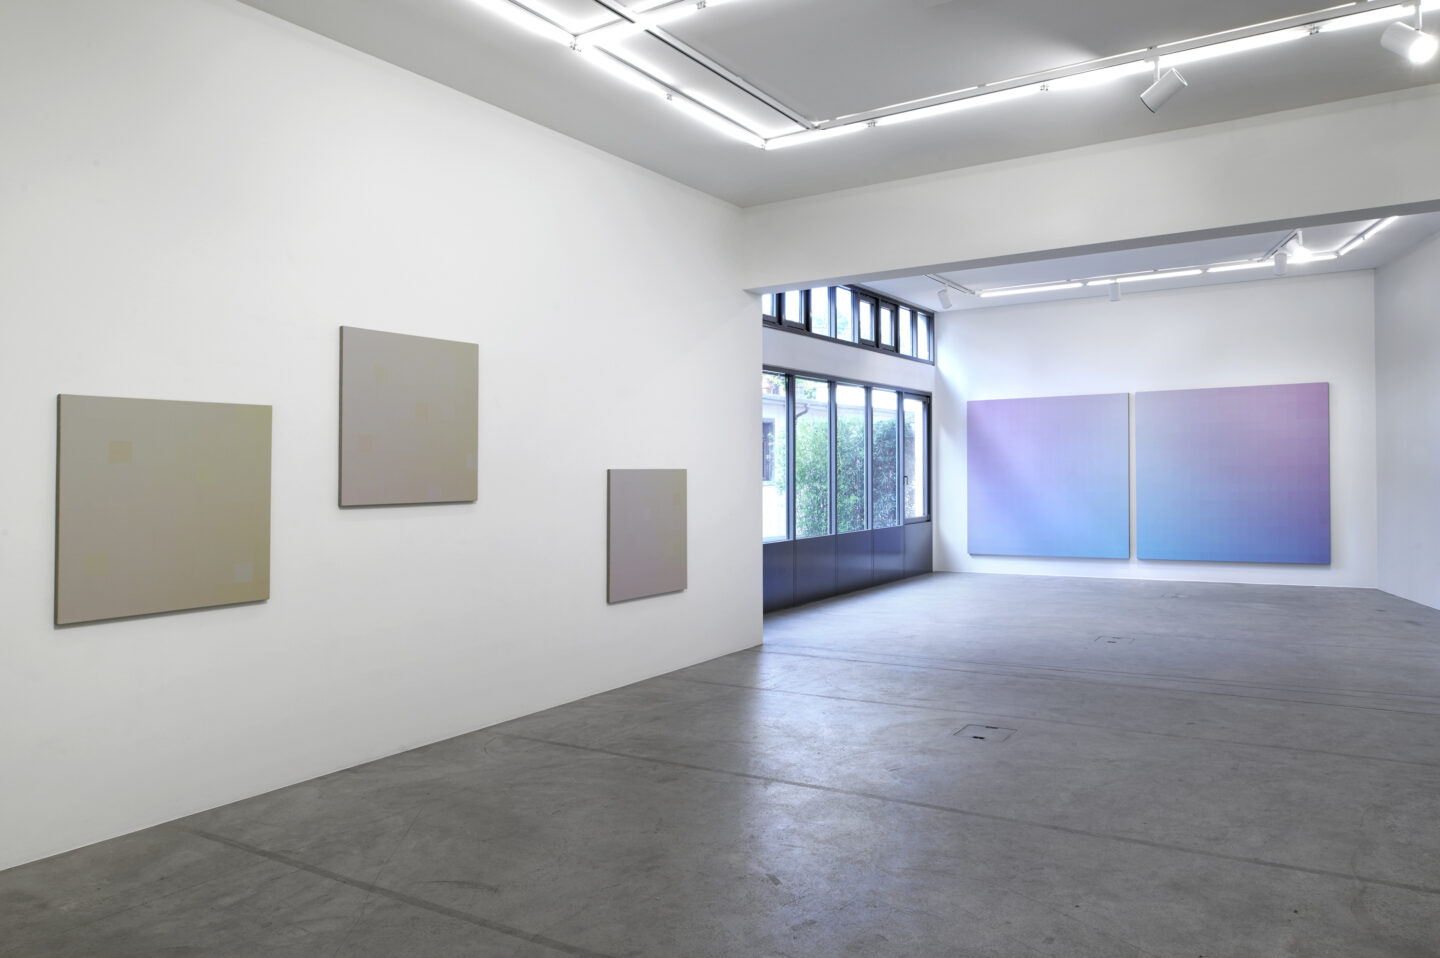 Exhibition View Zhang Xuerui Soloshow «The Everyday as Ontology» at Galerie Urs Meile, Lucerne / Courtesy: the artist and Galerie Urs Meile